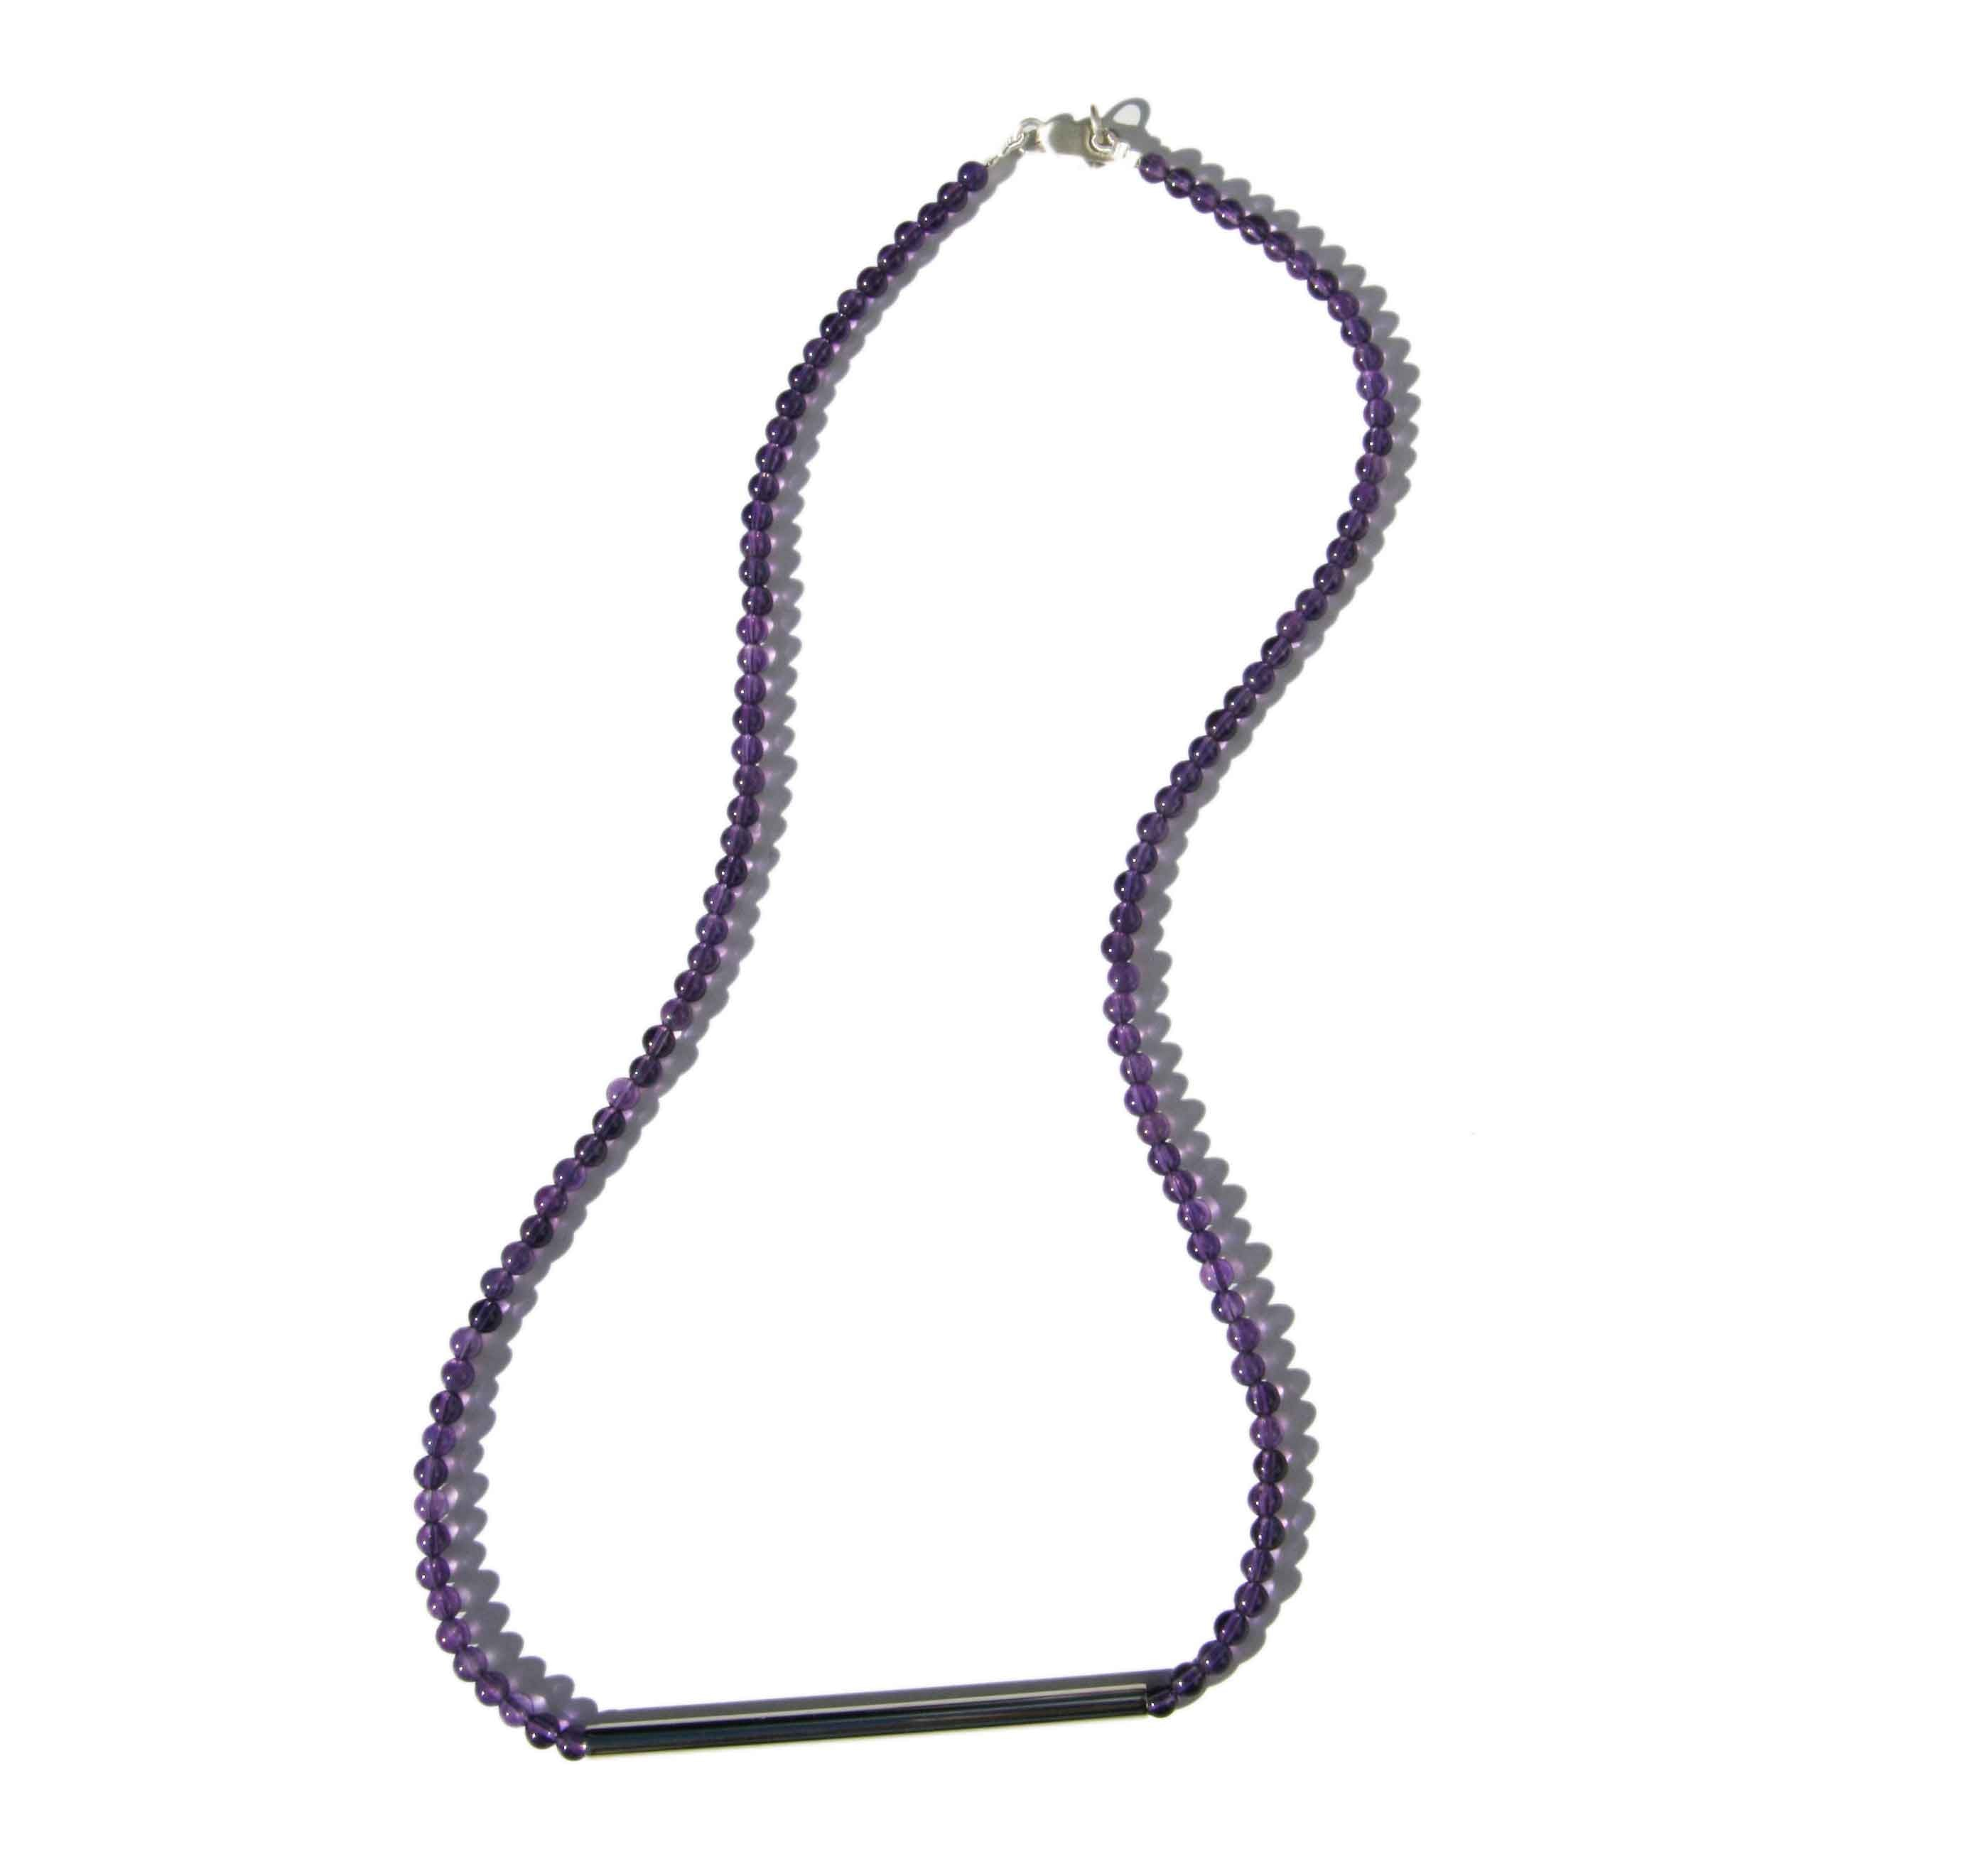 Amethyst Necklace with Silver Rod